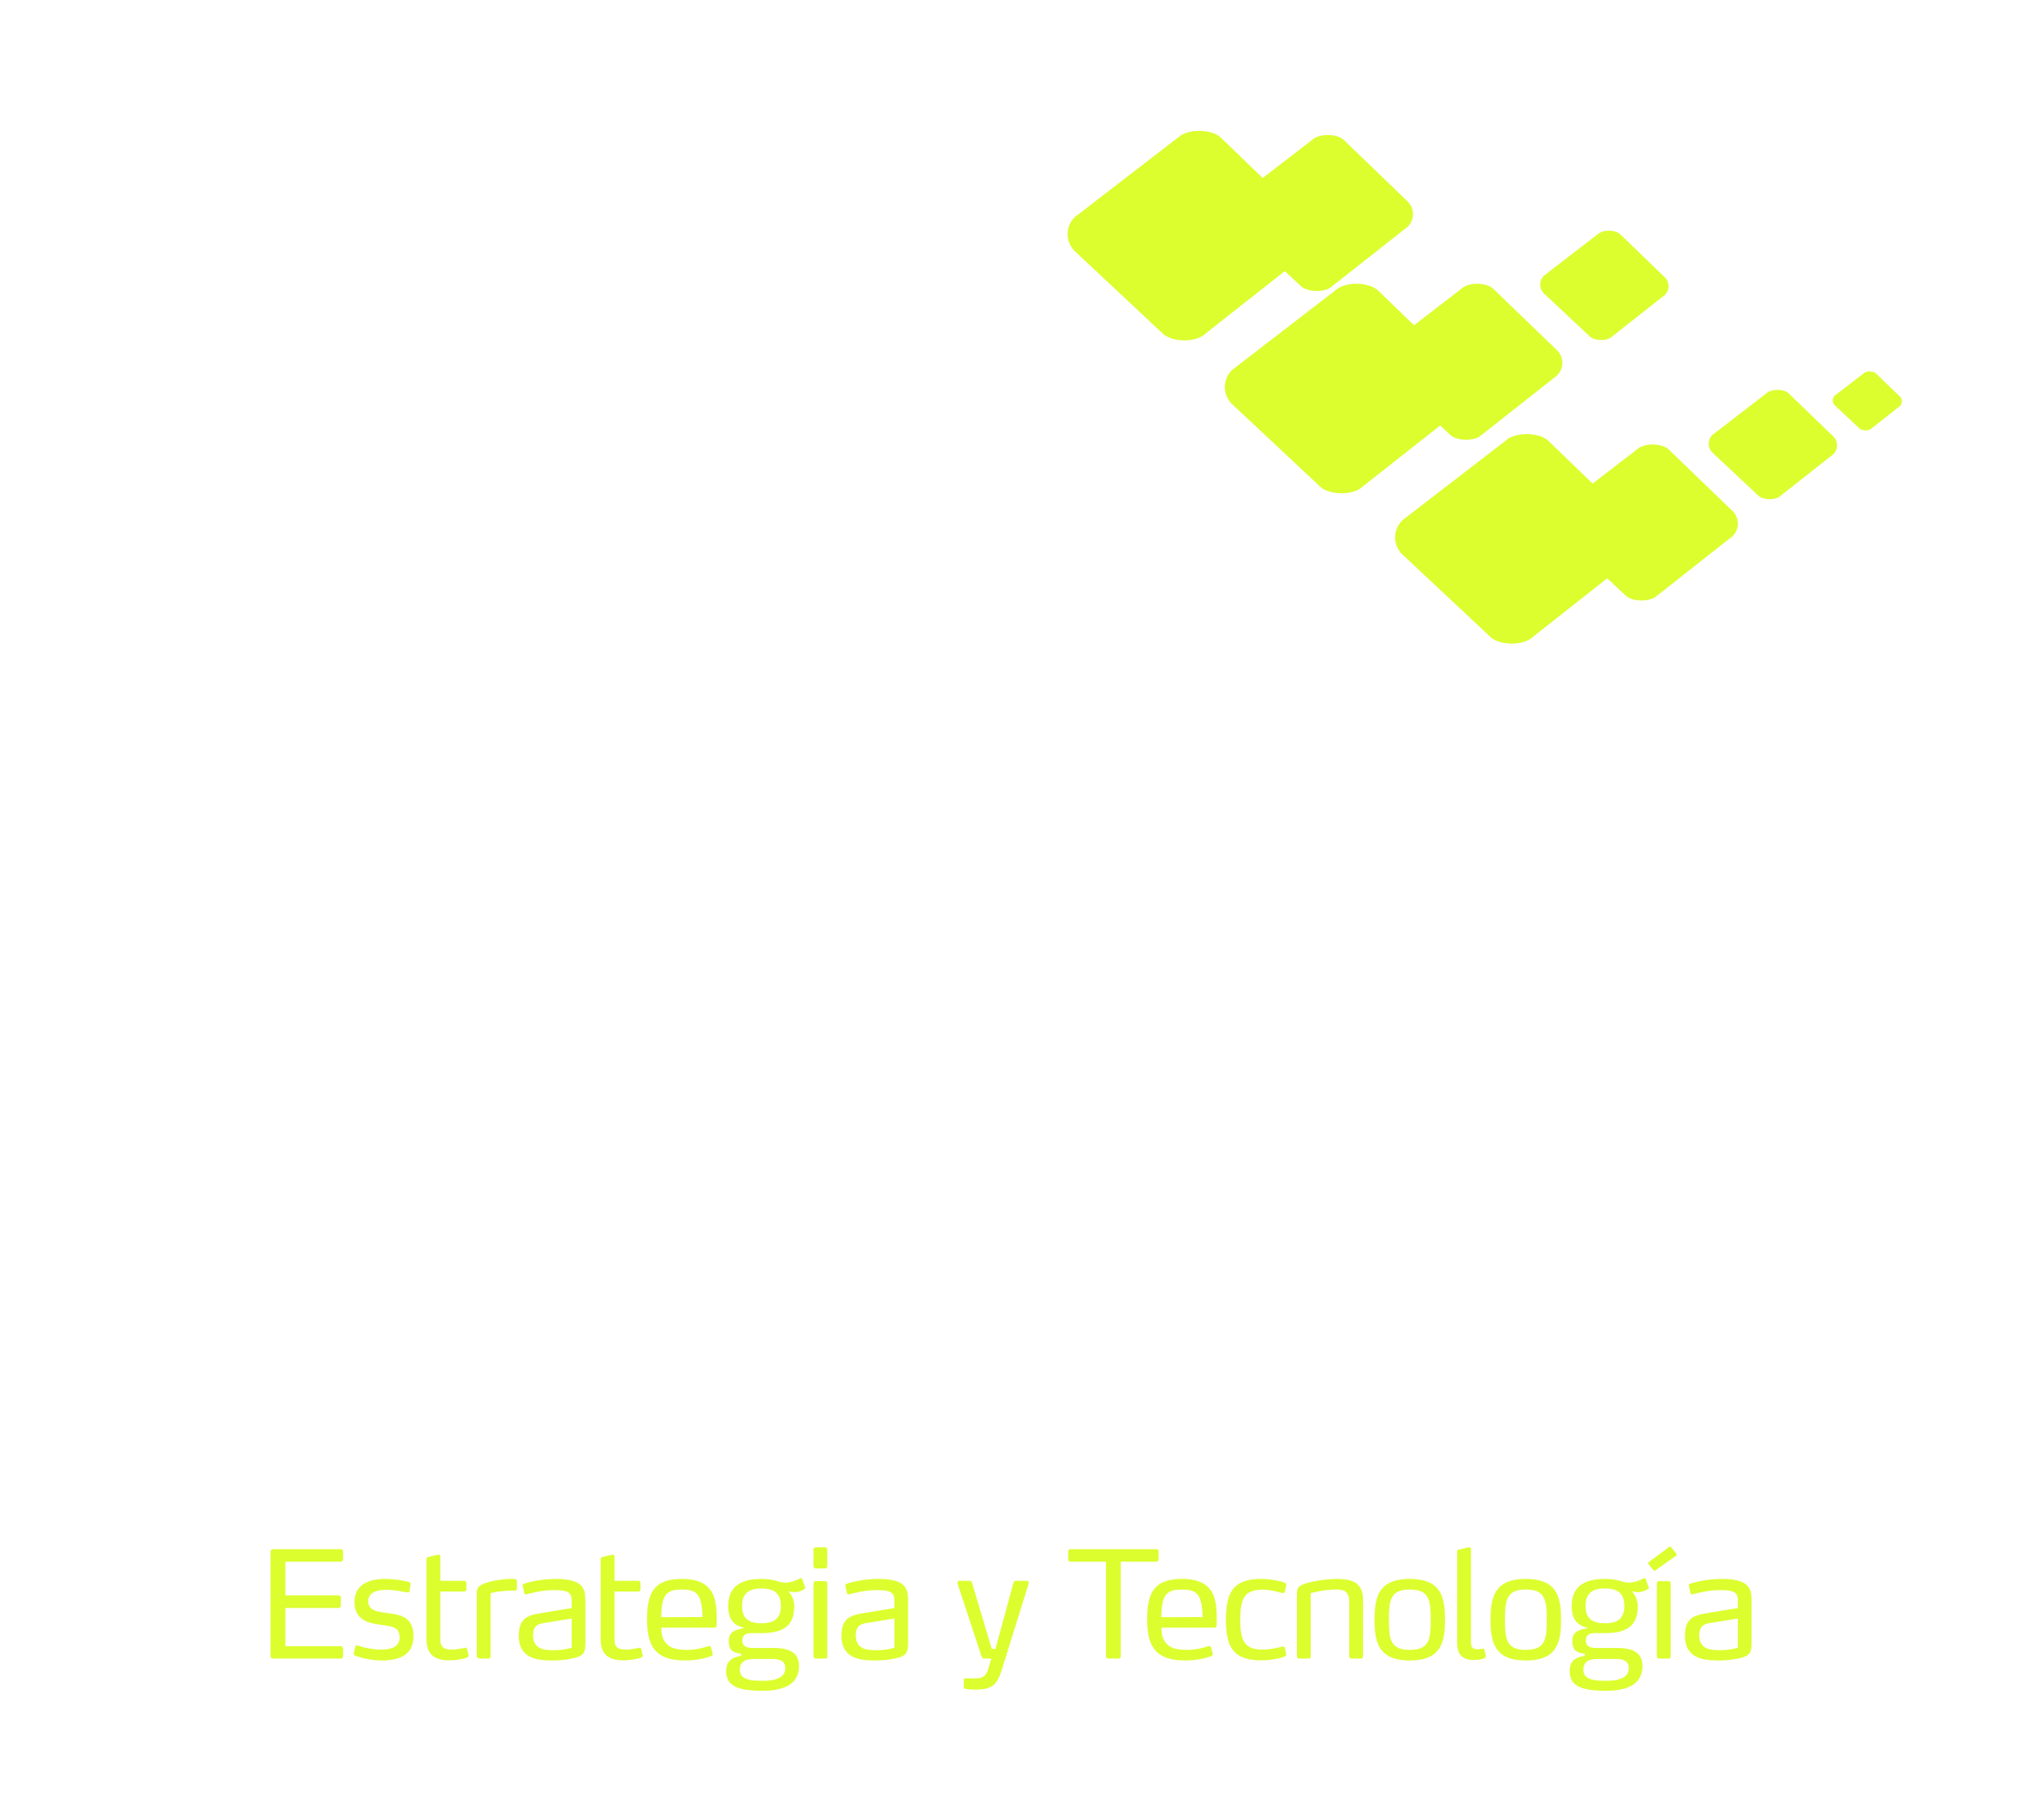 People & Chess